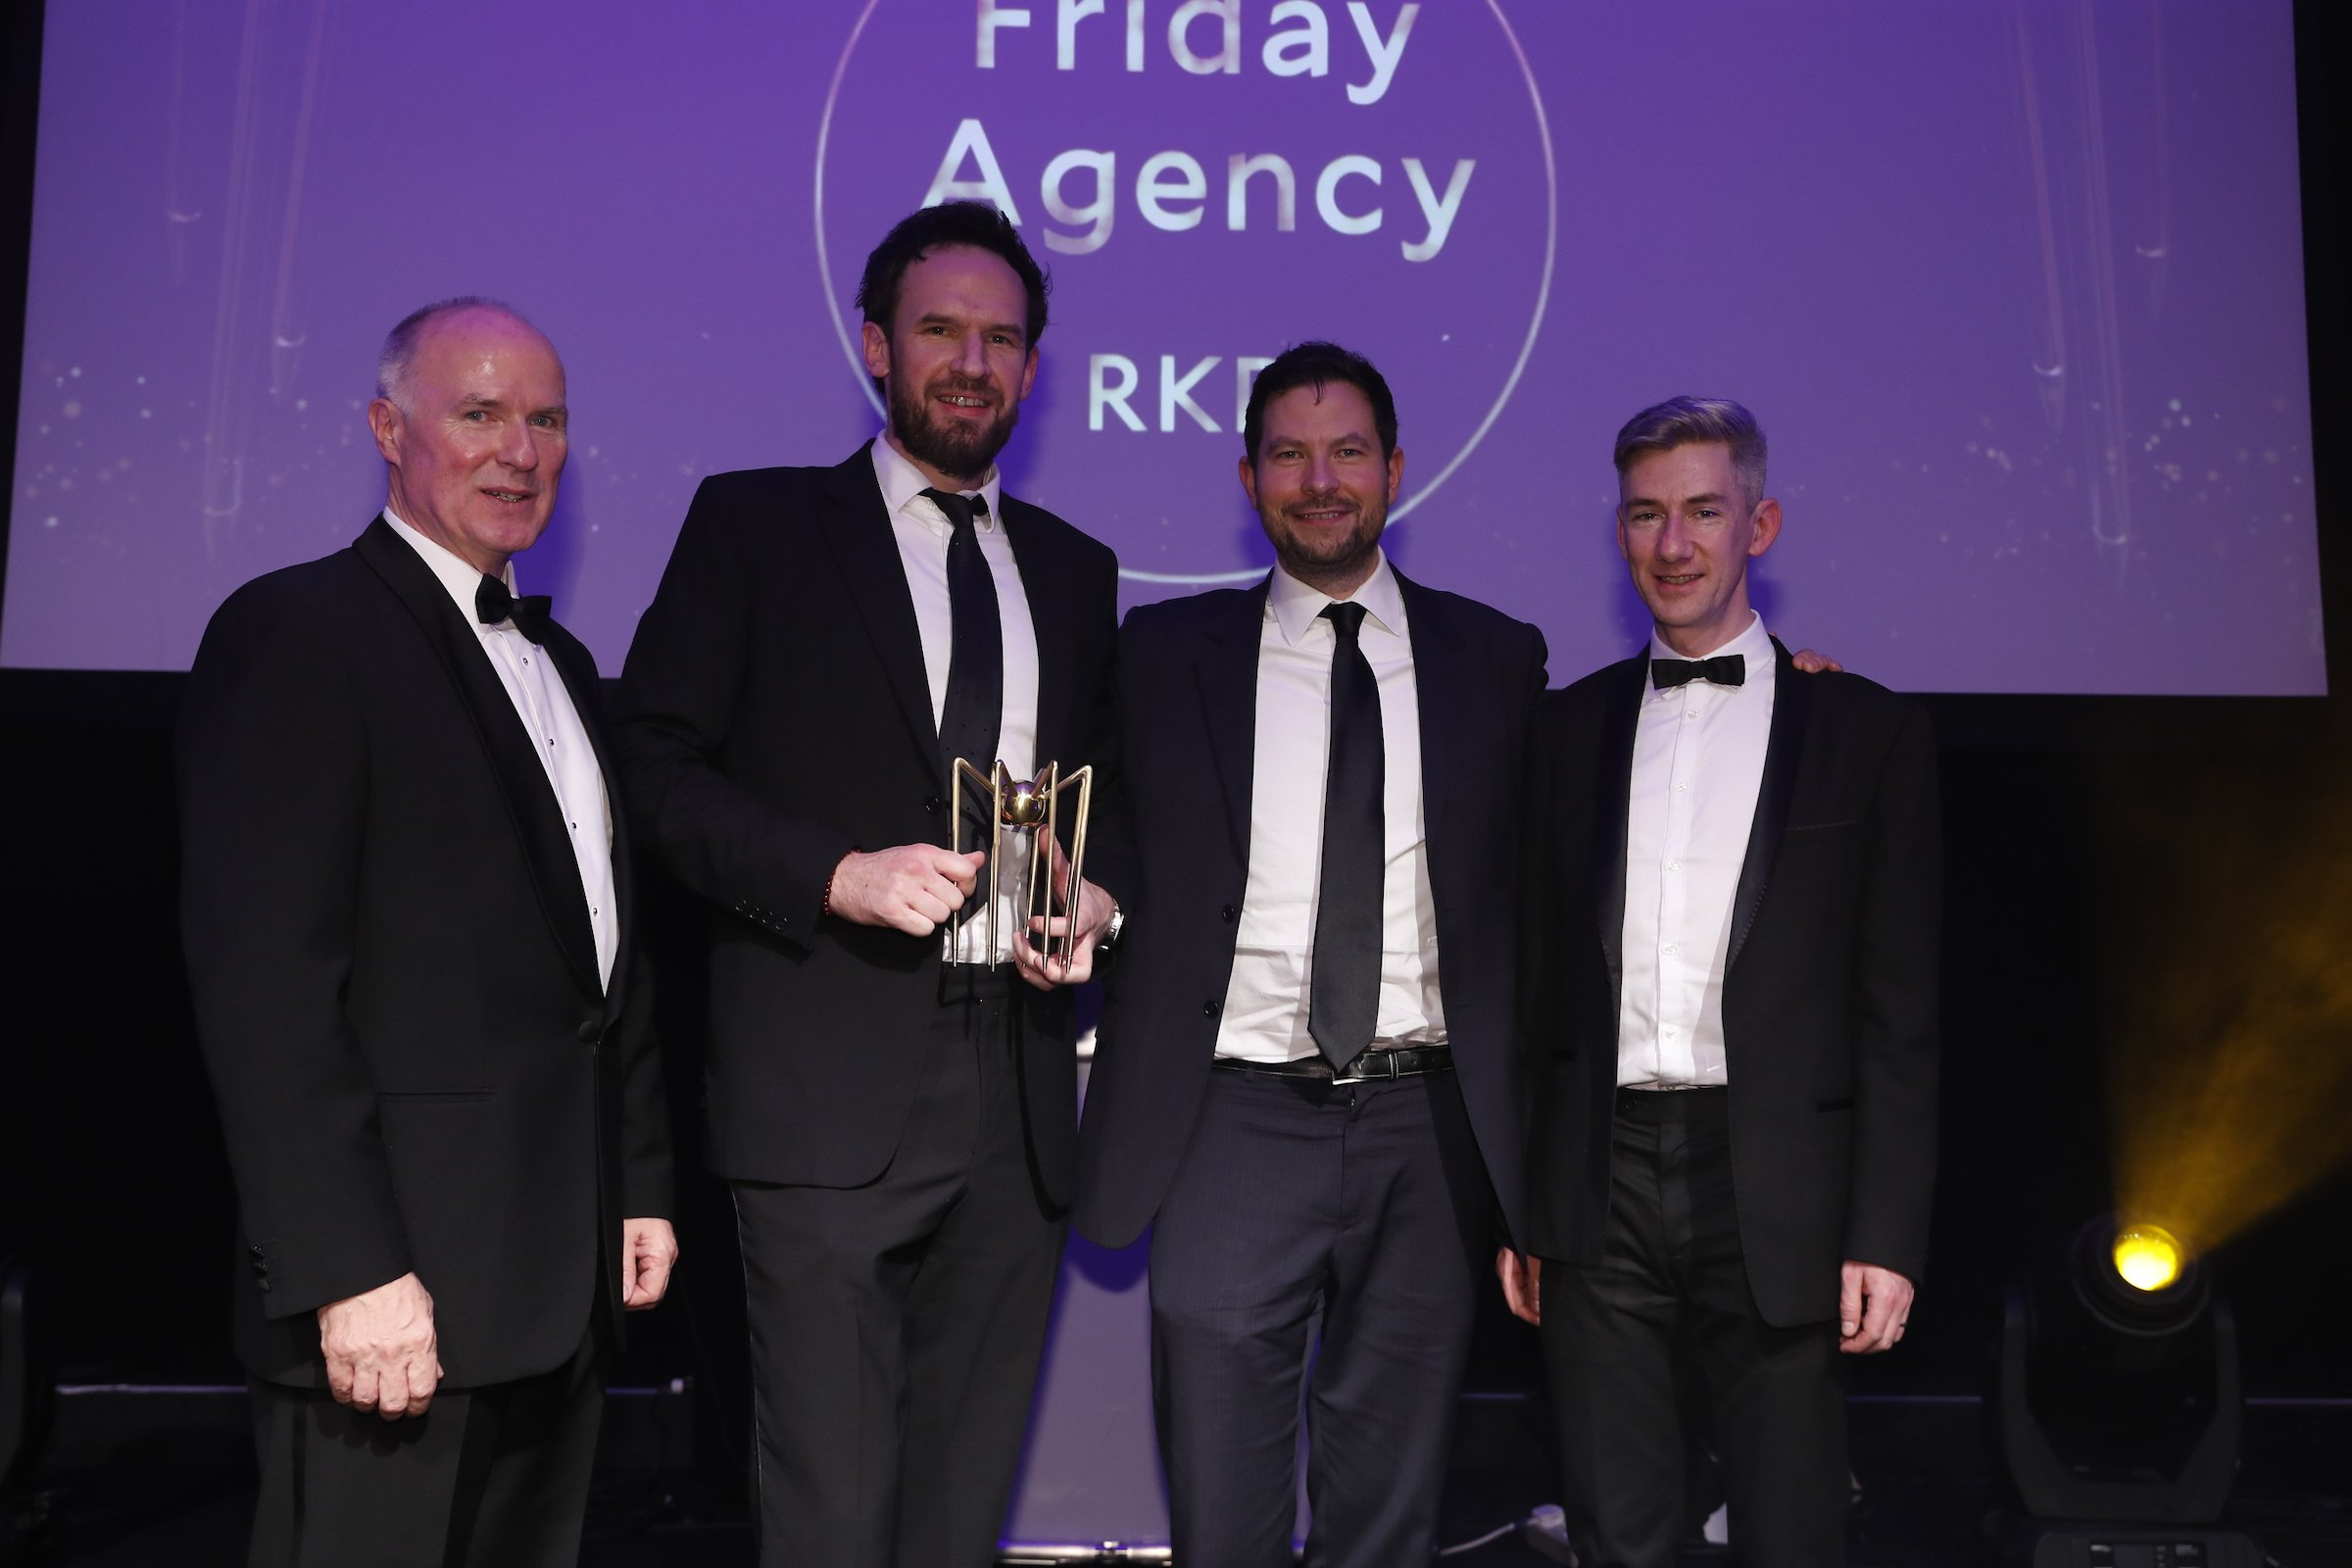 Spiders Awards 2019: David Curtin, CEO, IE Domain Registry presenting Friday Agency with their award for Best Website